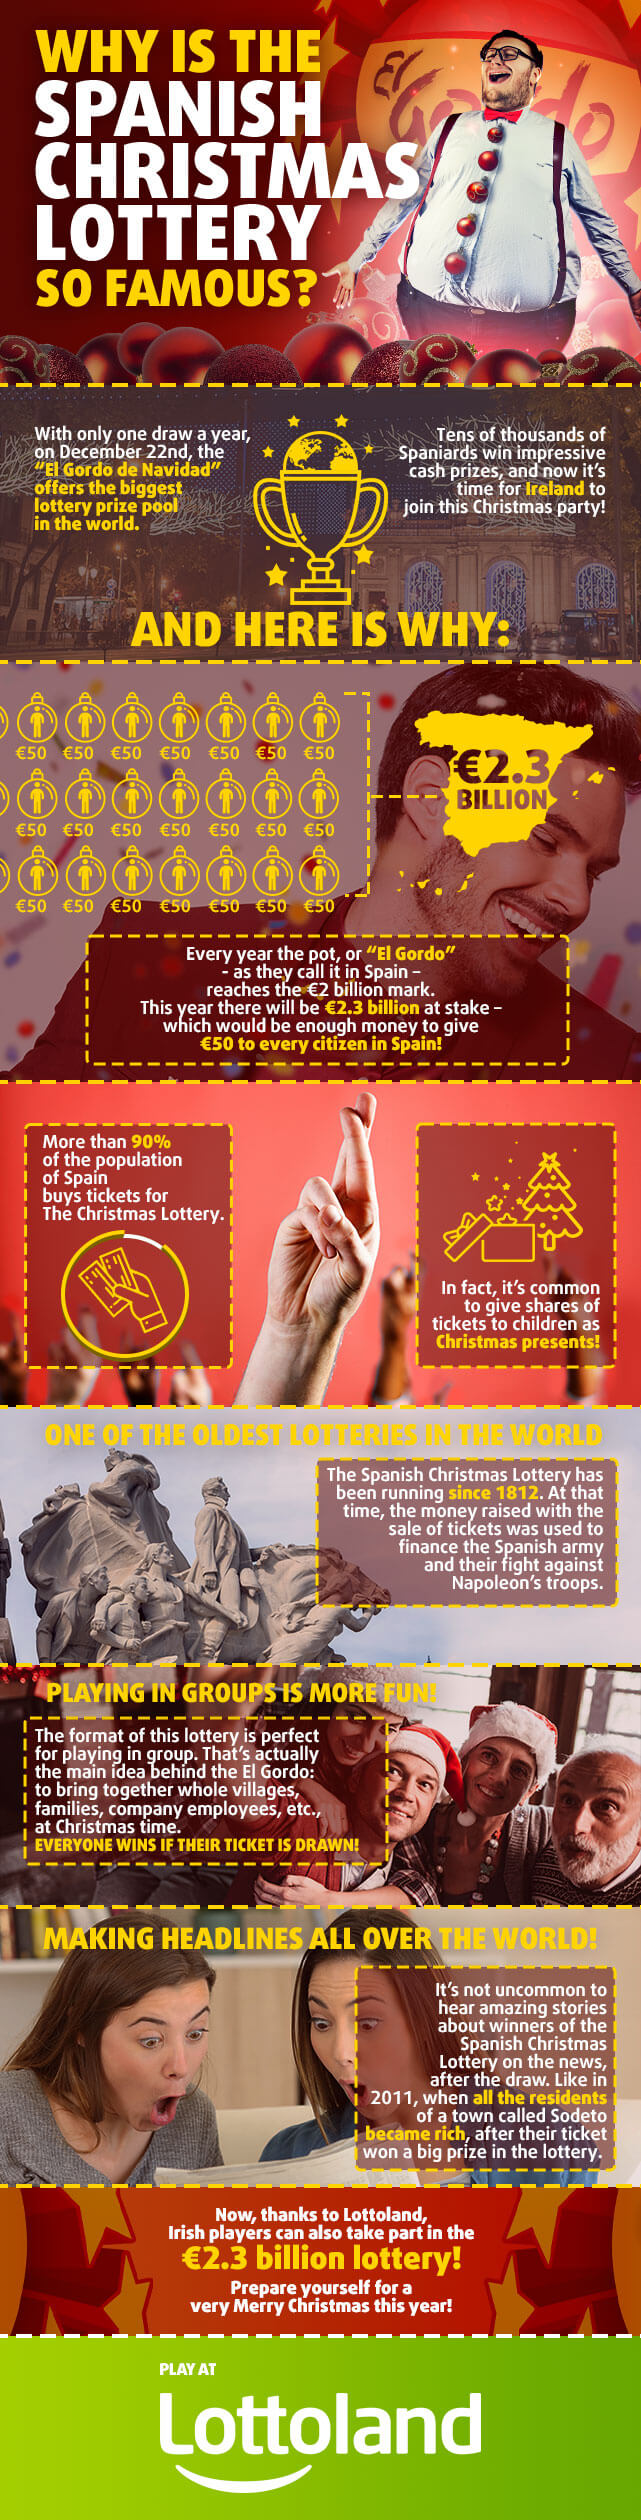 Infographic about the Spanish Christmas Lottery at Lottoland